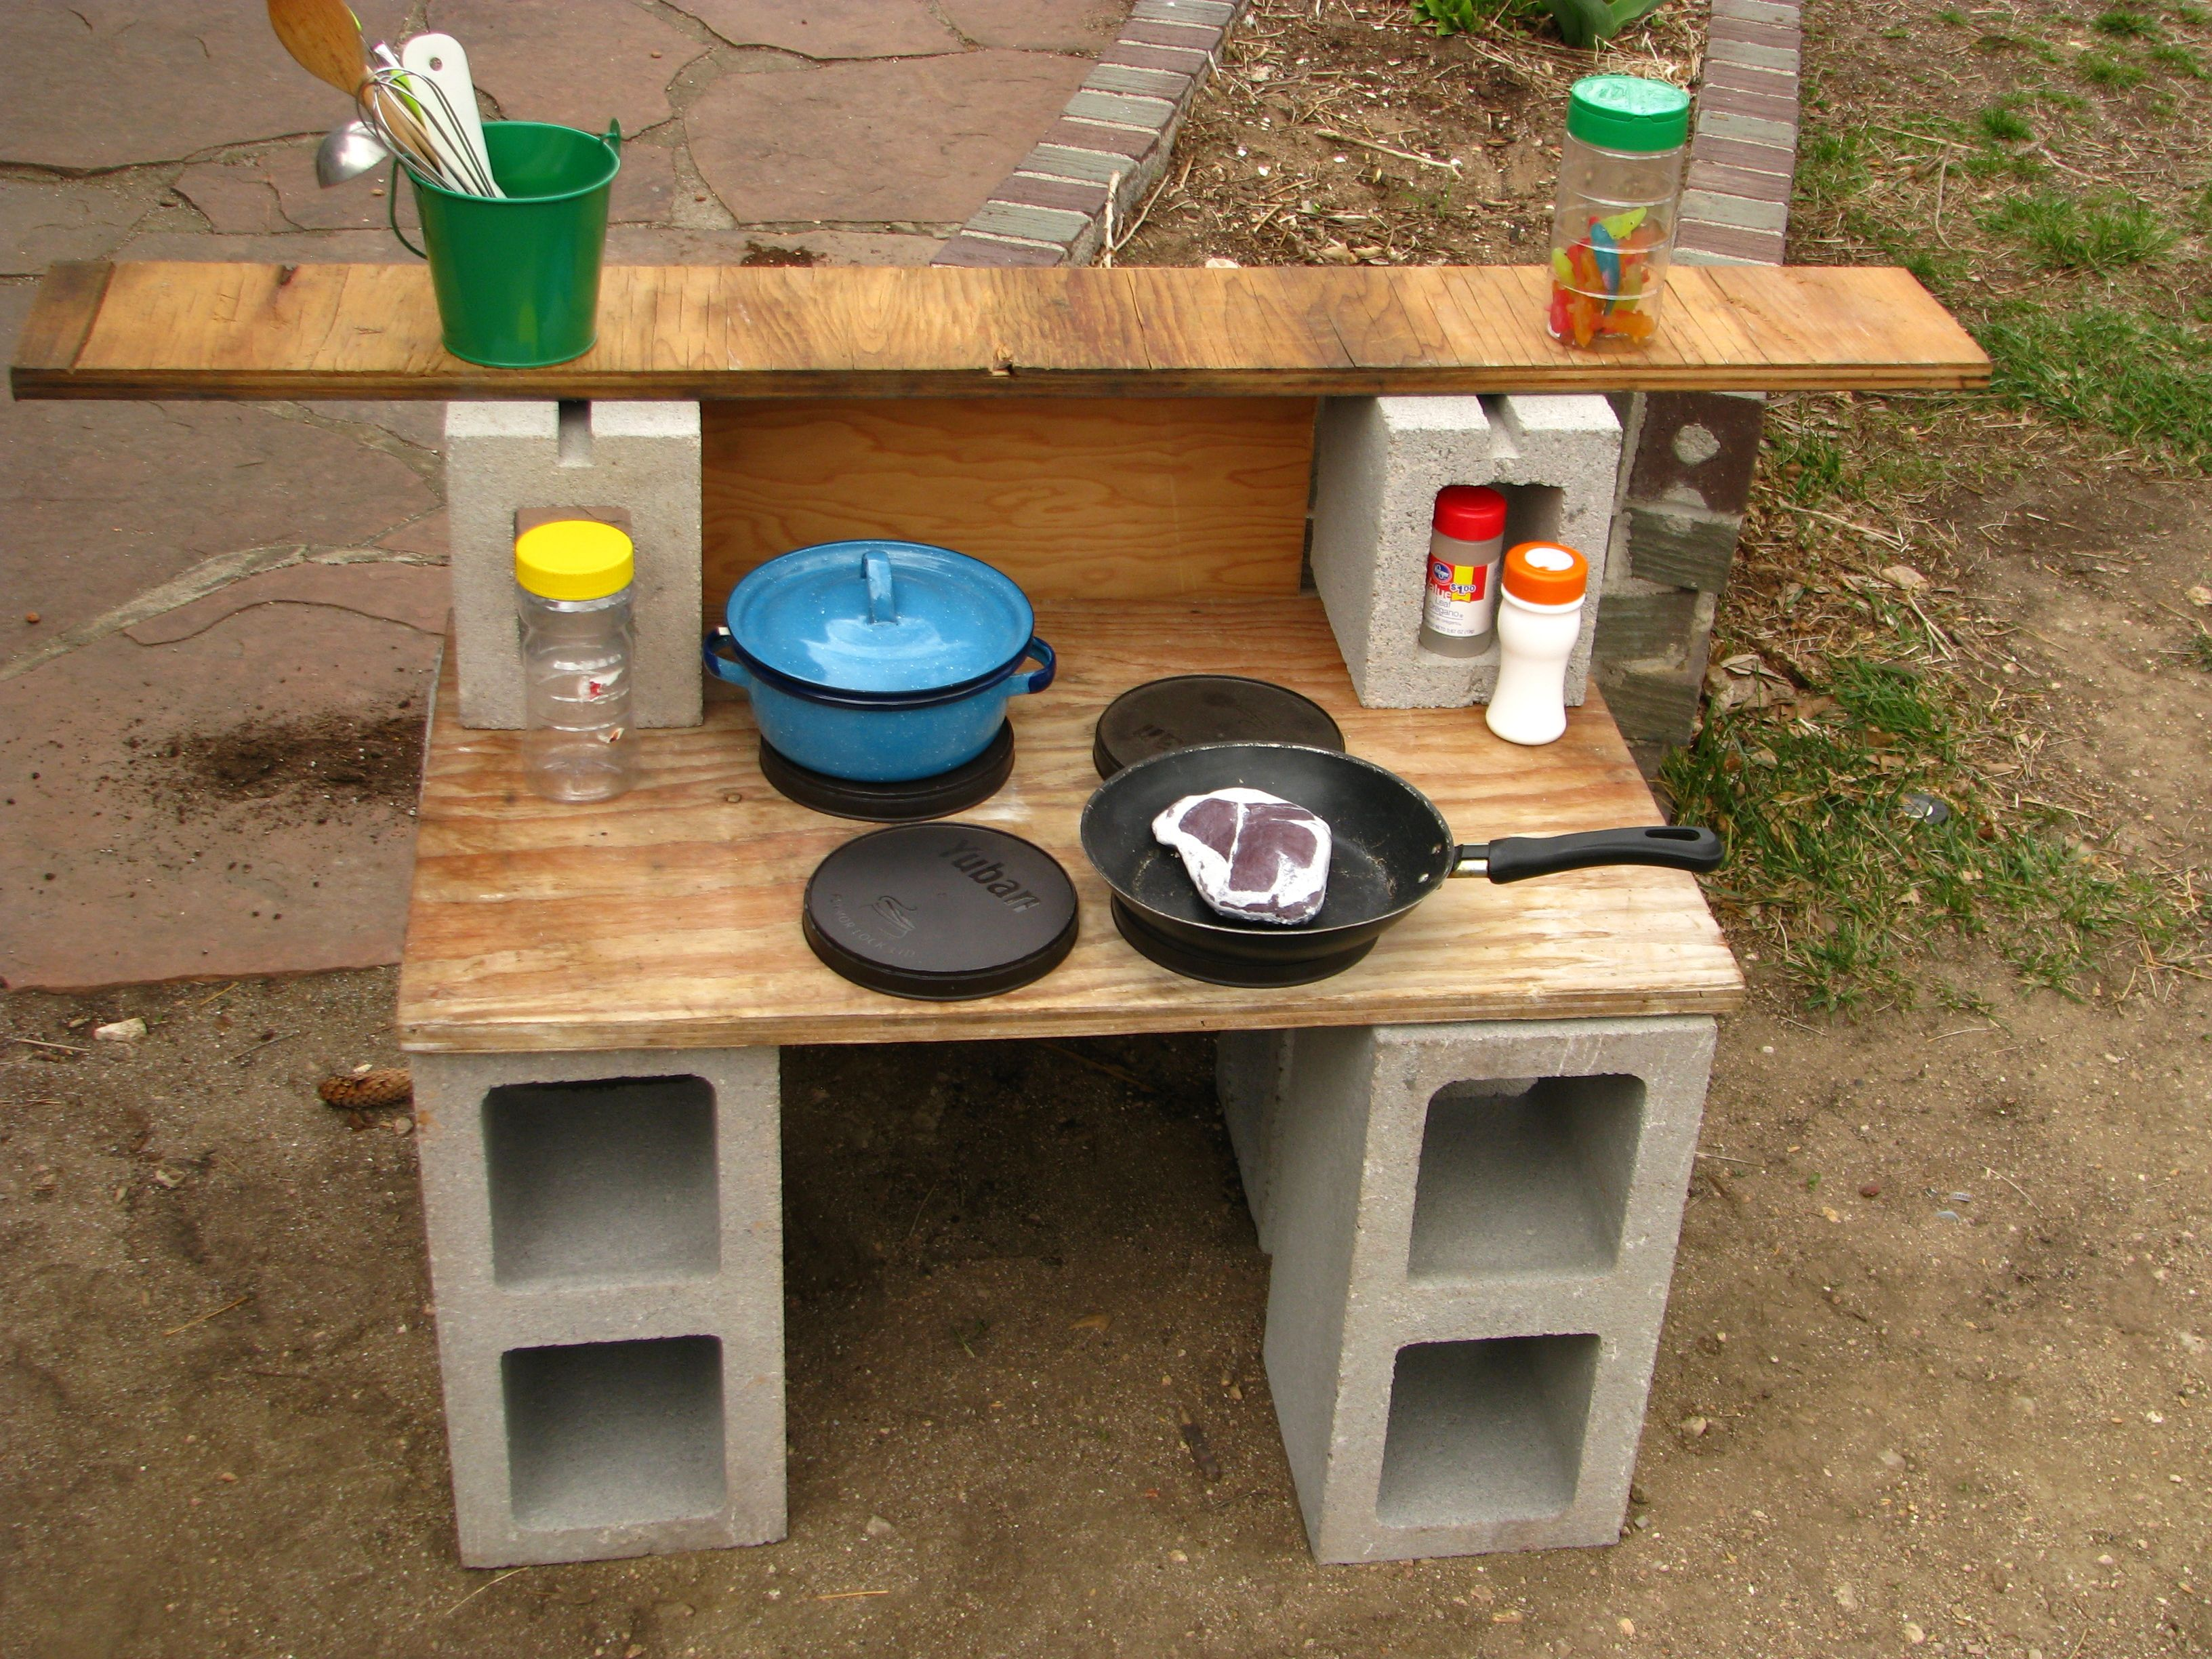 Cinder Block Magic A Movable Outdoor Kitchen Made Of Inexpensive Materials Mud Kitchen For Kids Outdoor Play Kitchen Playground Backyard Diy